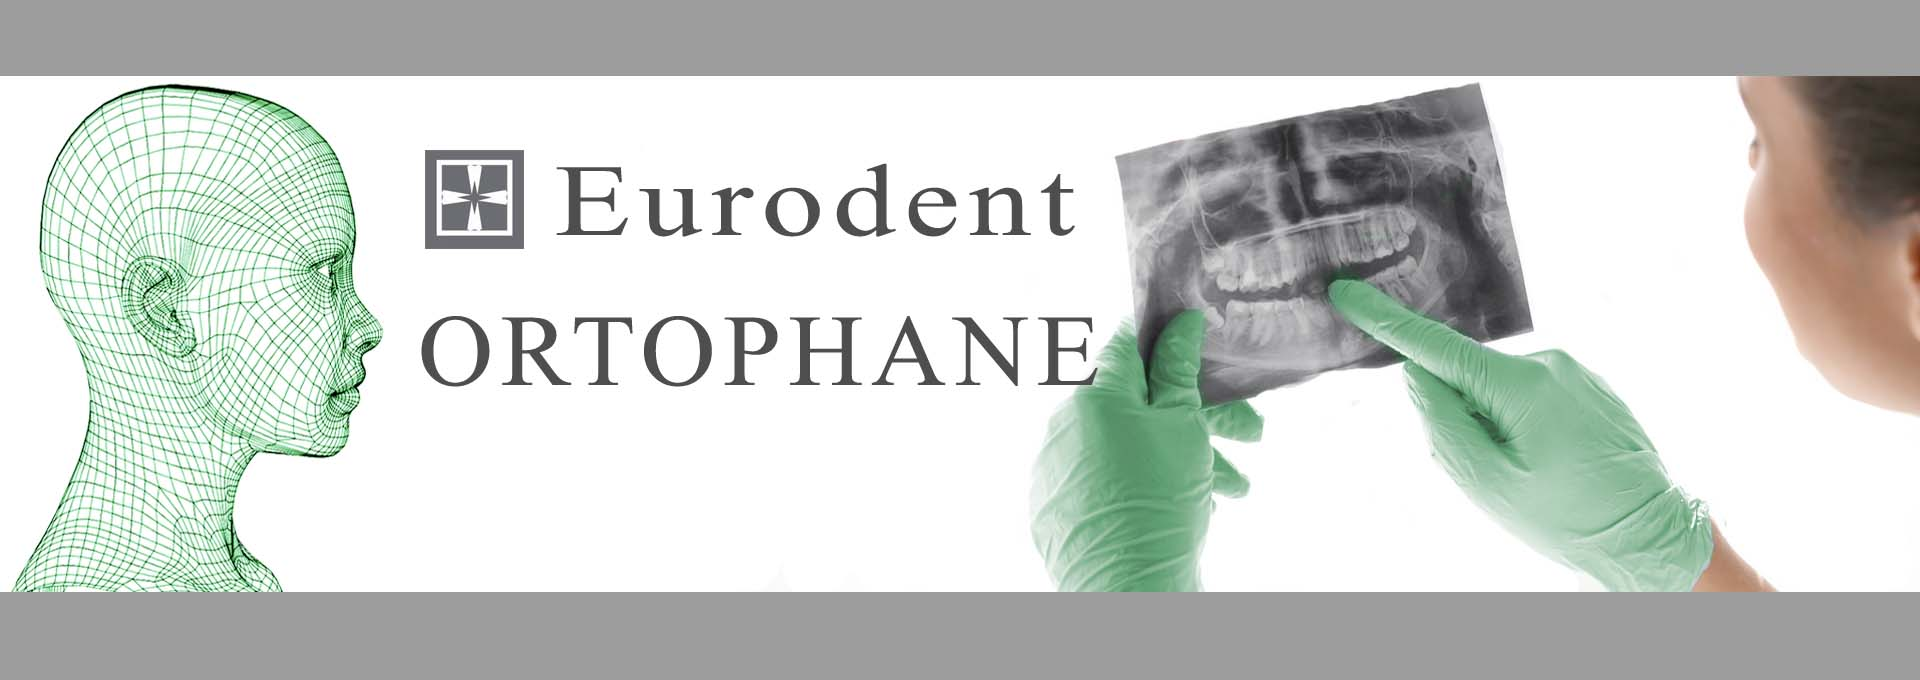 Eurodent Dental Orthopane X Ray